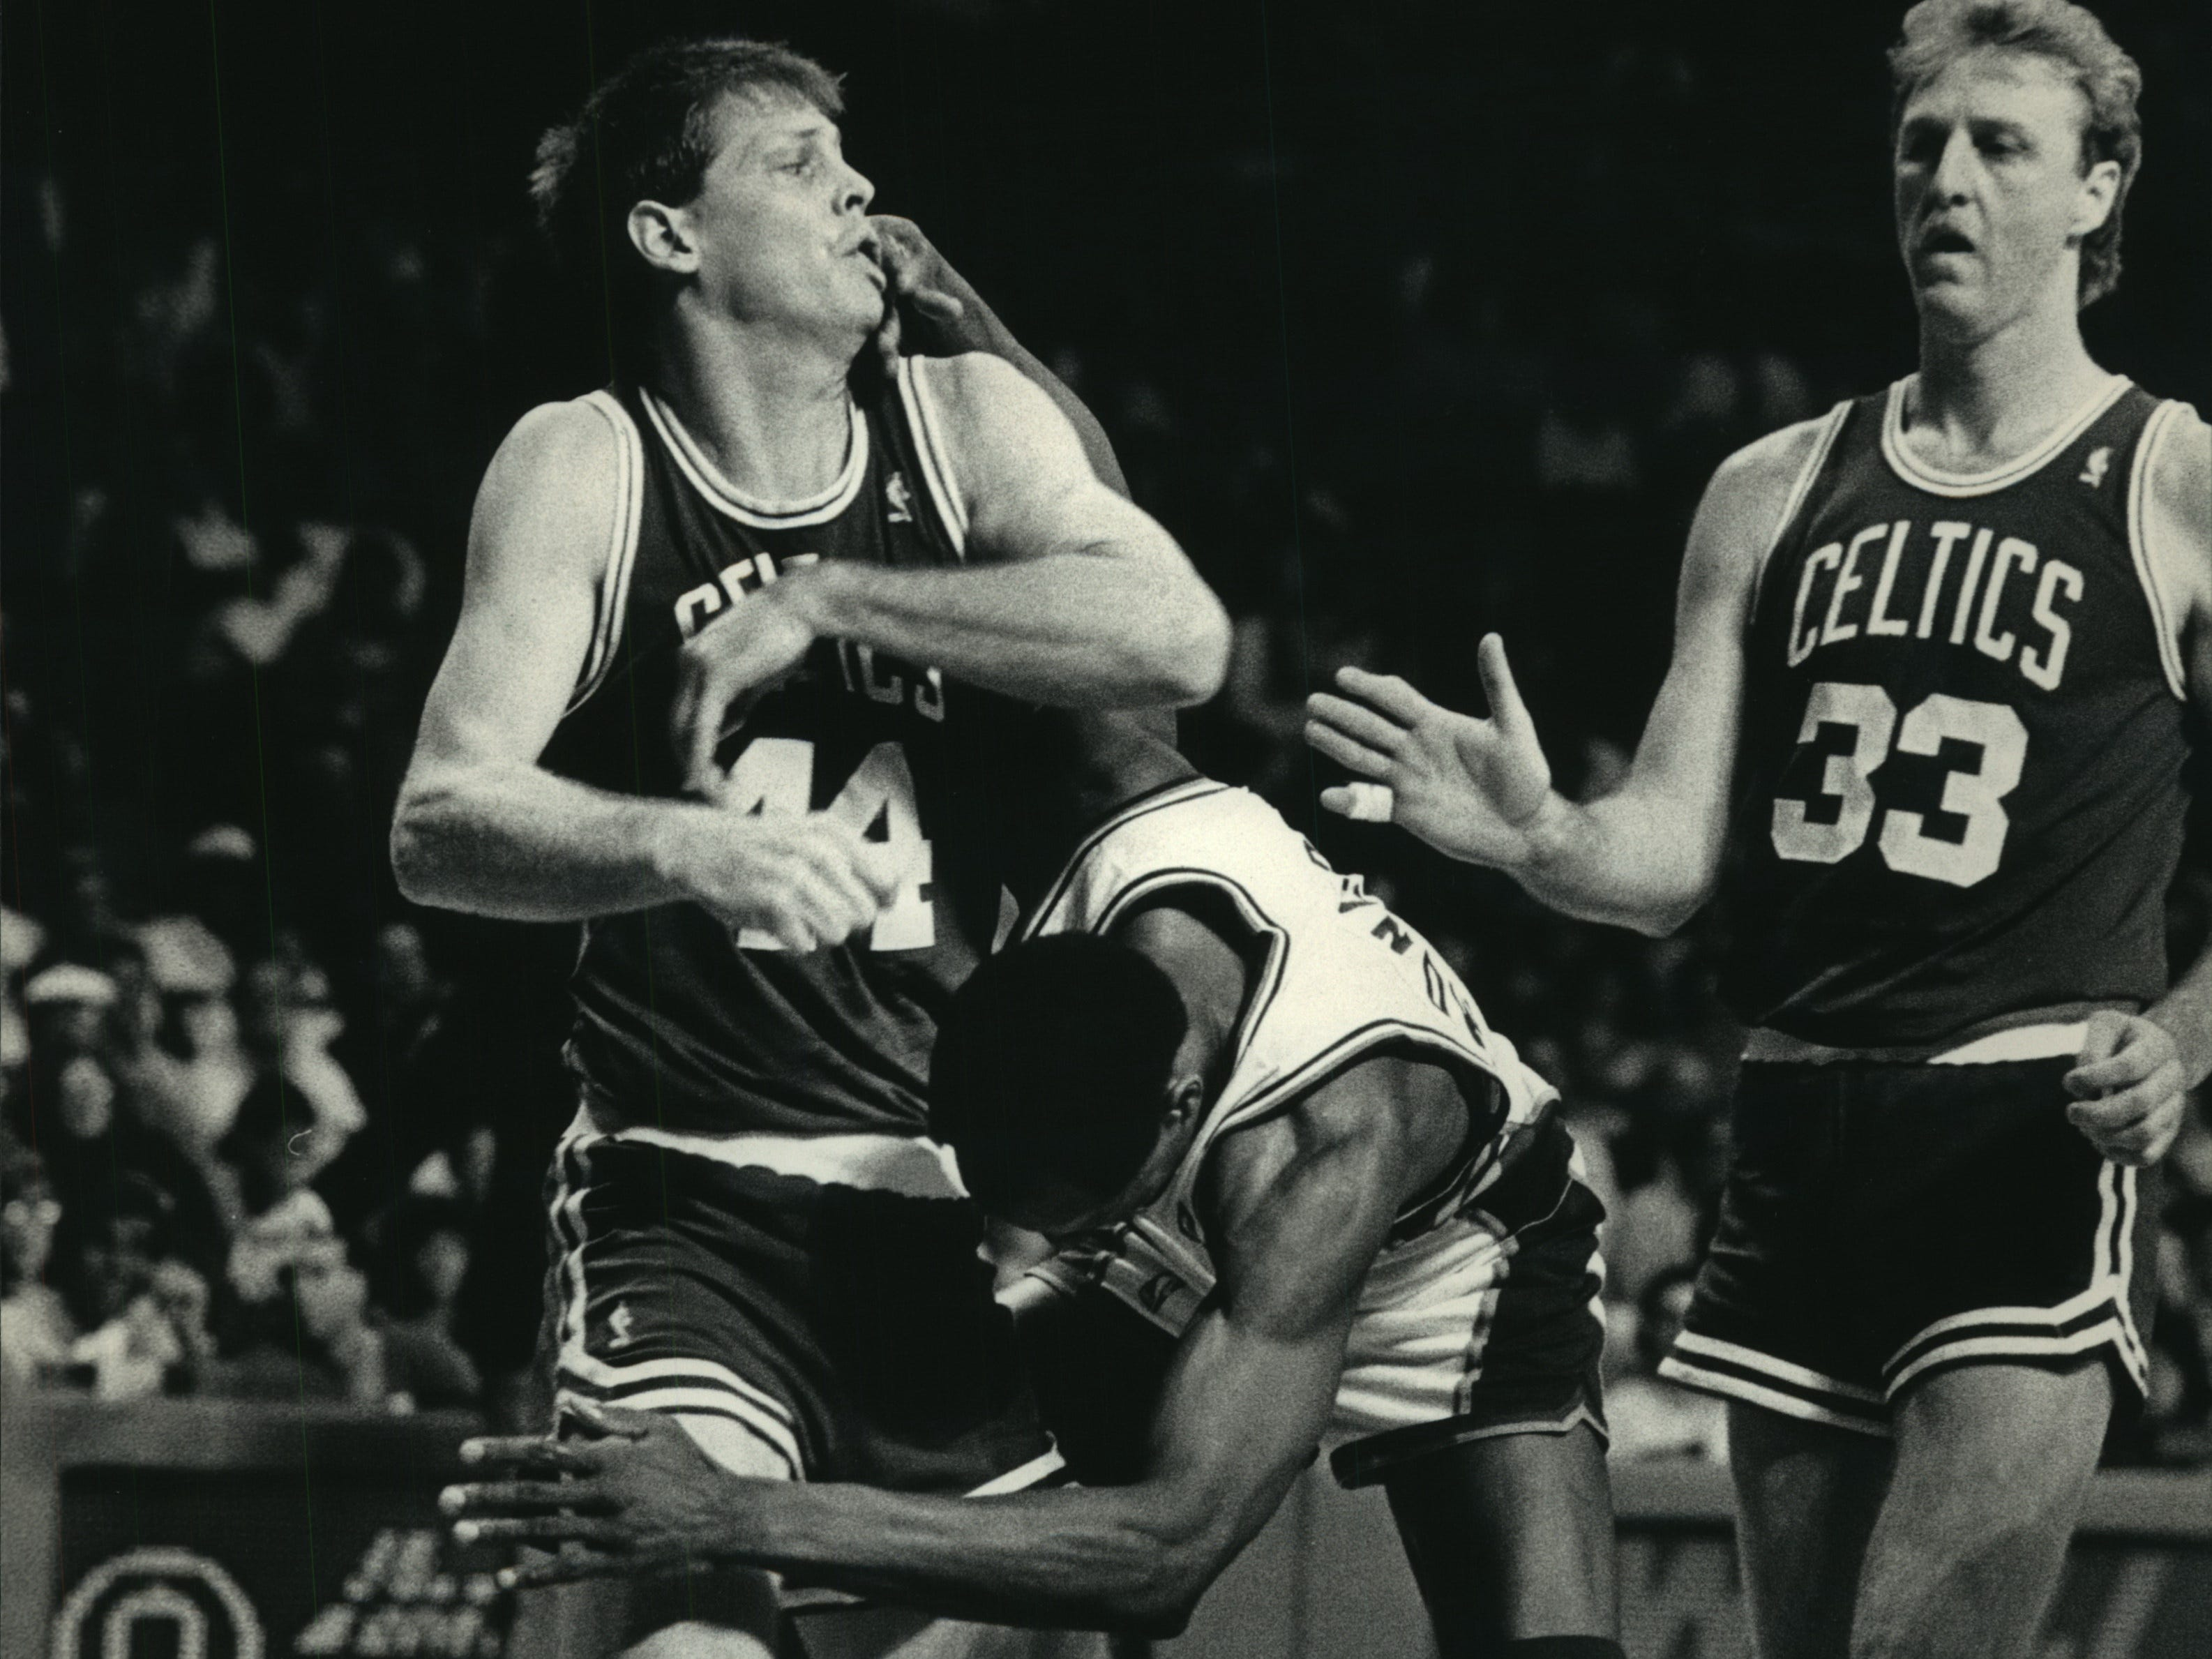 1987: Boston's Danny Ainge (left) and Milwaukee's Sidney Moncrief tangle as Larry Bird looks on during second-quarter action in Game 6 of the Eastern Conference semifinals at the Milwaukee Arena on May 15, 1987. The Bucks won the game, 121-111, but the Celtics game back and won Game 7 and the series the following day. This photo was published in the May 16, 1987, Milwaukee Journal.